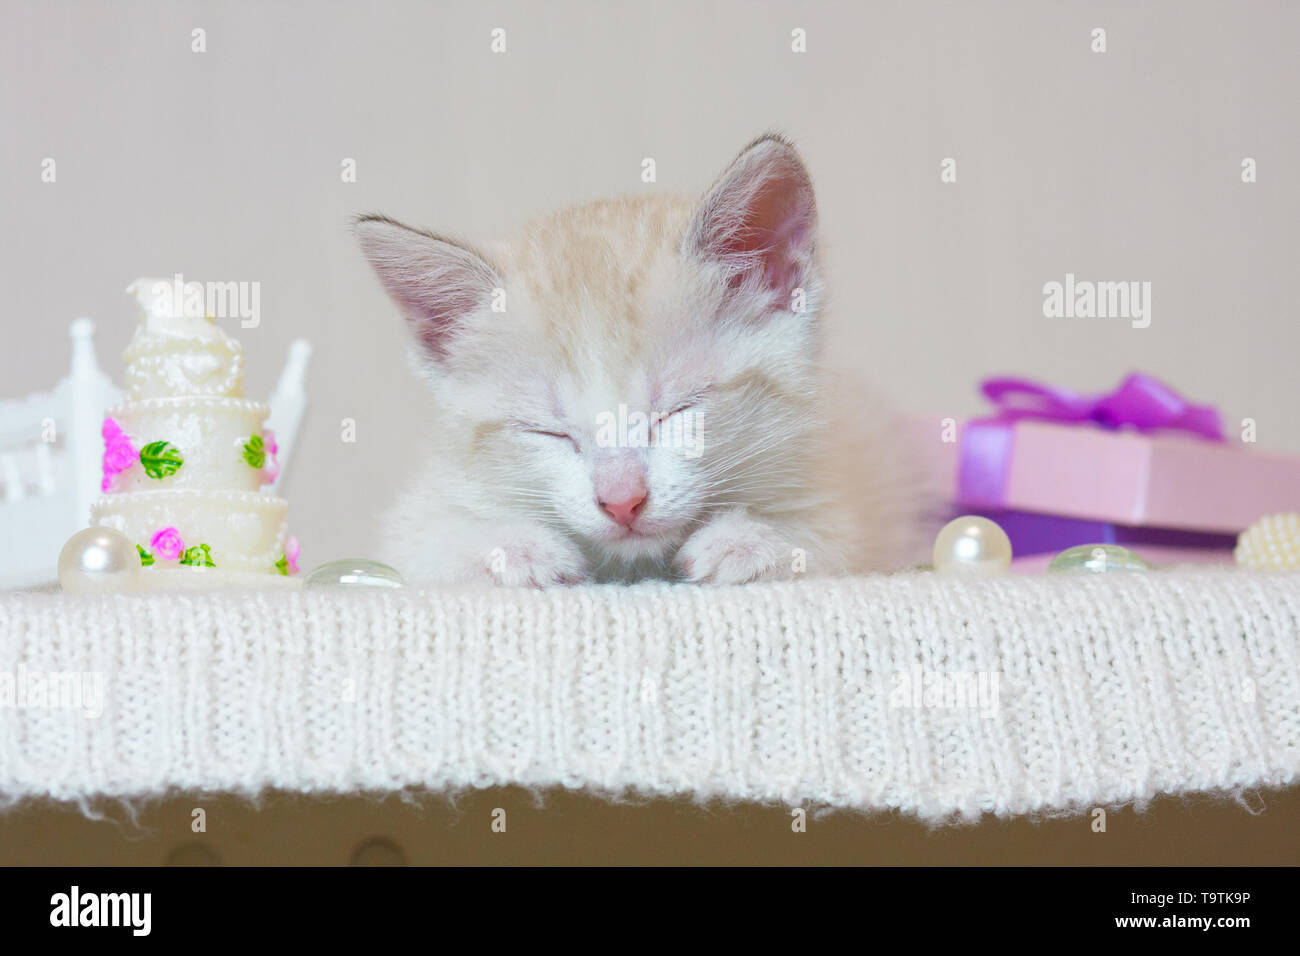 The concept of dreams. A small kitten sleeping. The cat is resting. The animal dreams. - Stock Image